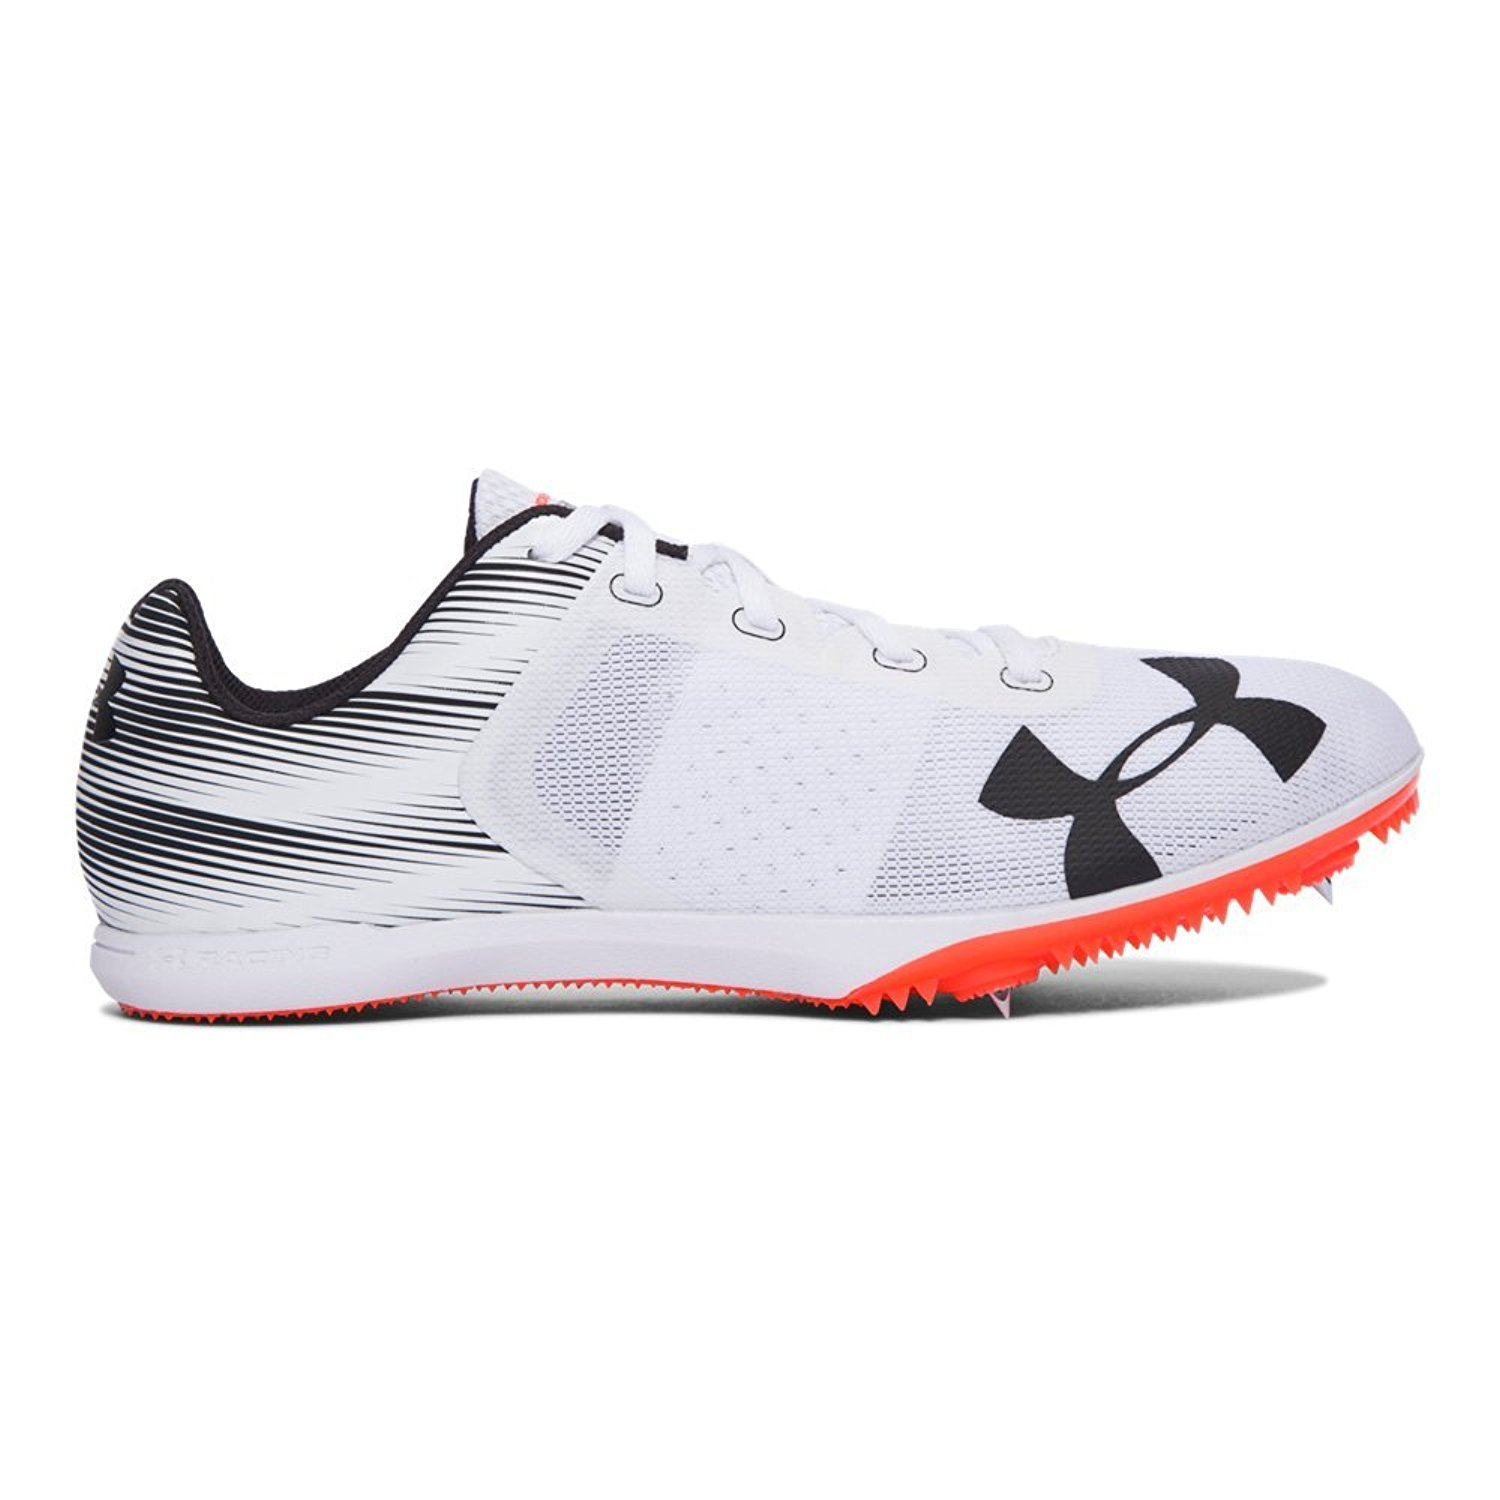 Under Armour Men's Kick Distance Spike Sneaker, White Black 1273940